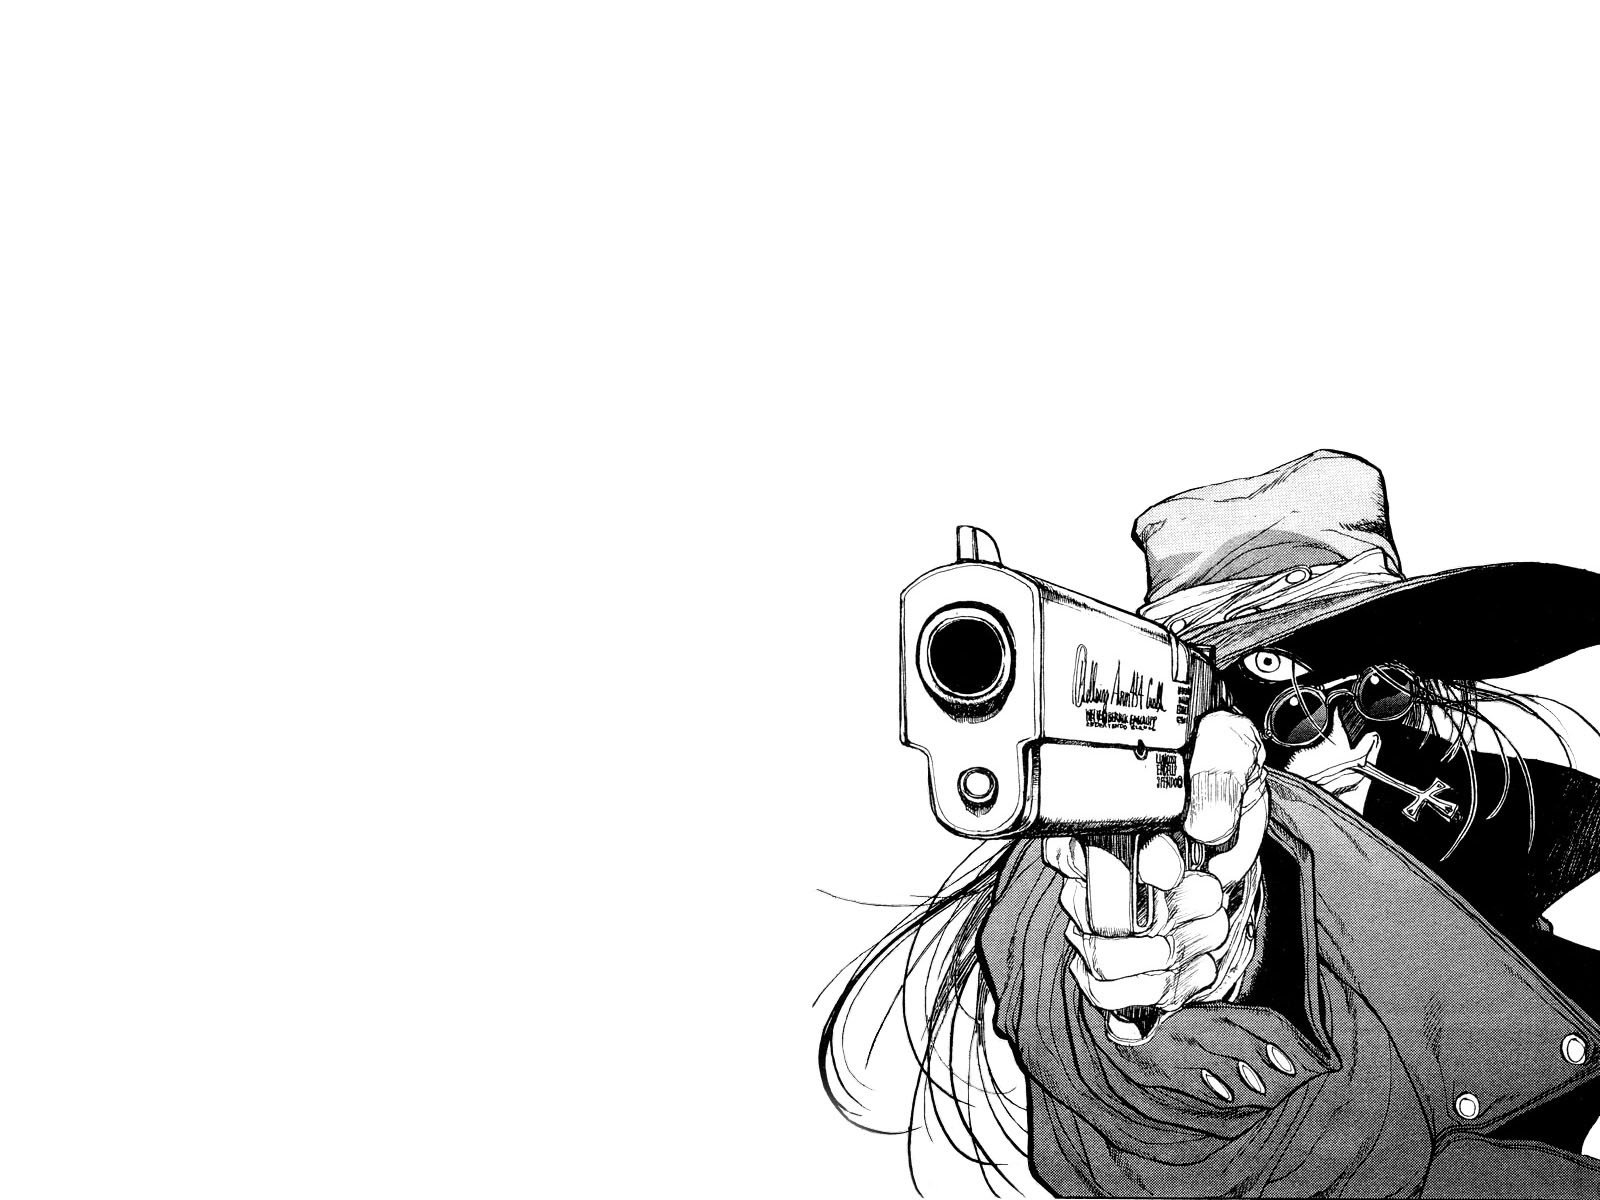 Hellsing wallpaper and background image 1600x1200 id - Anime hellsing wallpaper ...